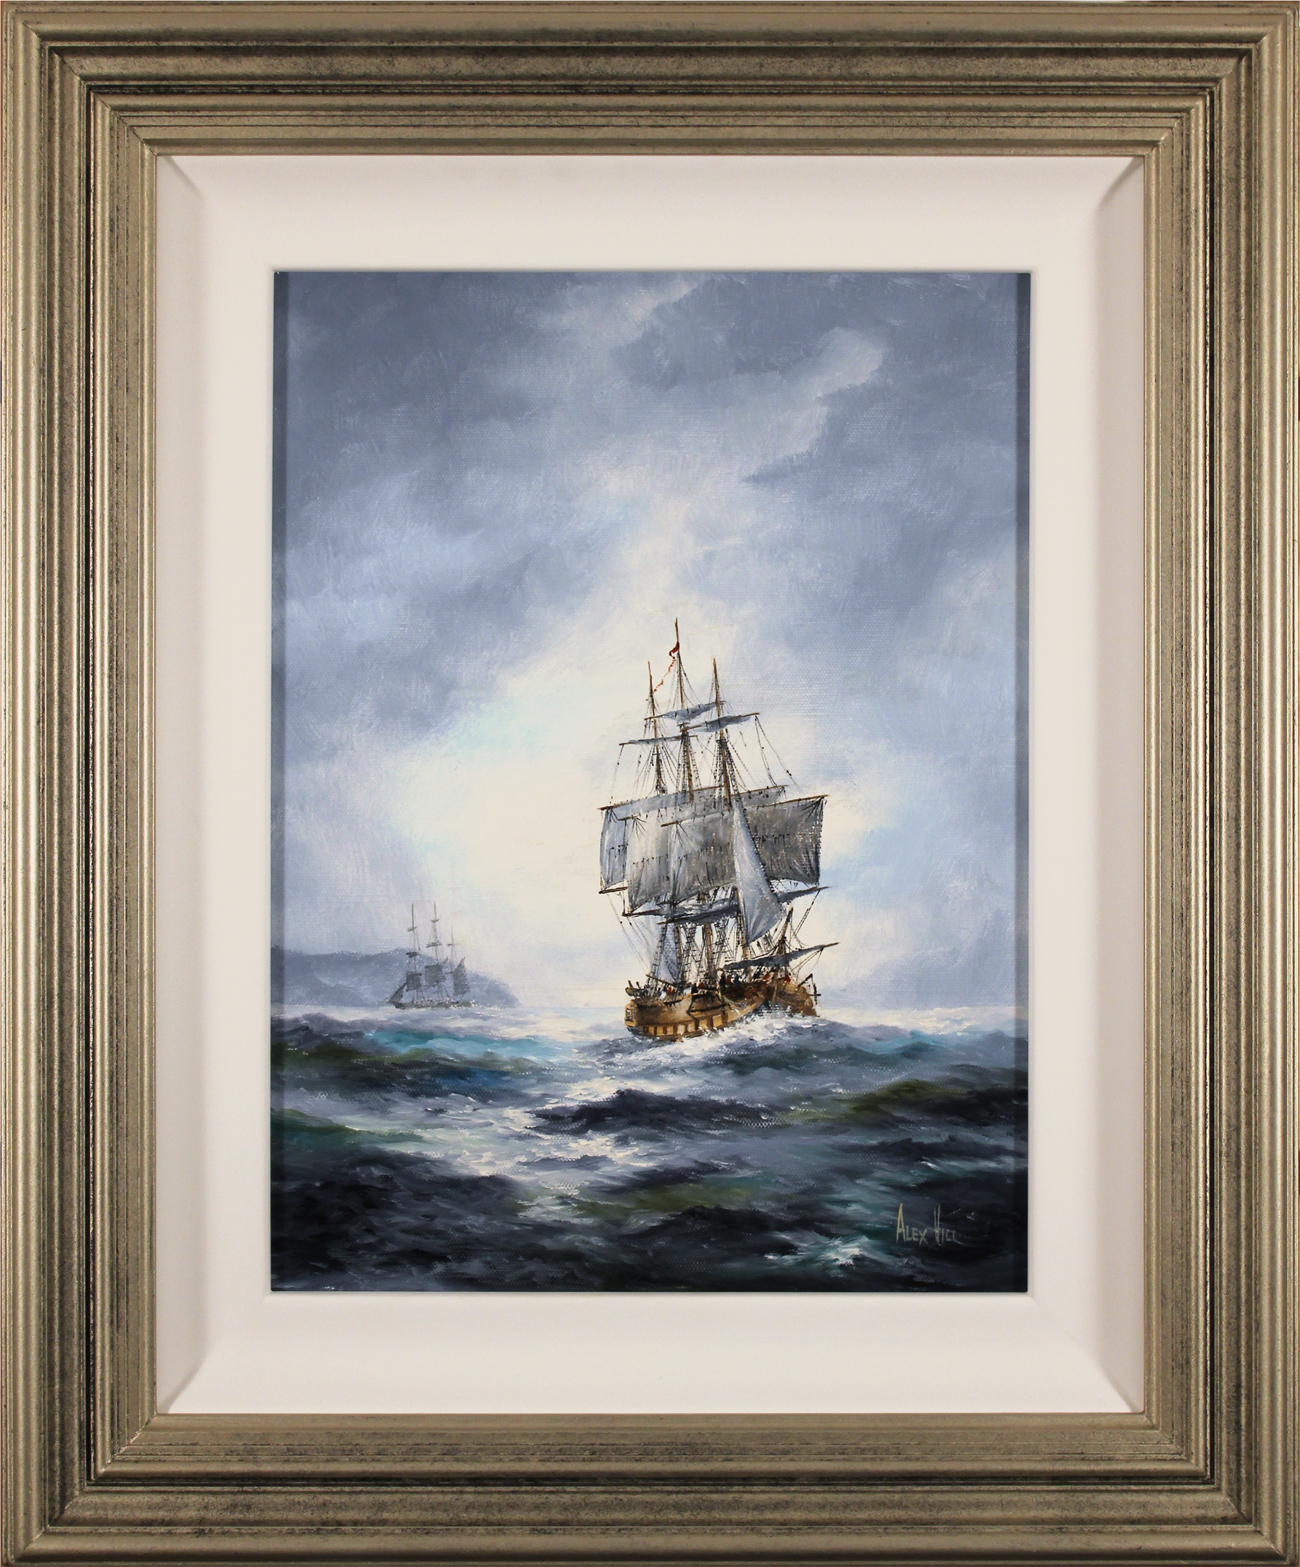 Alex Hill, Original oil painting on canvas, After the Storm Click to enlarge